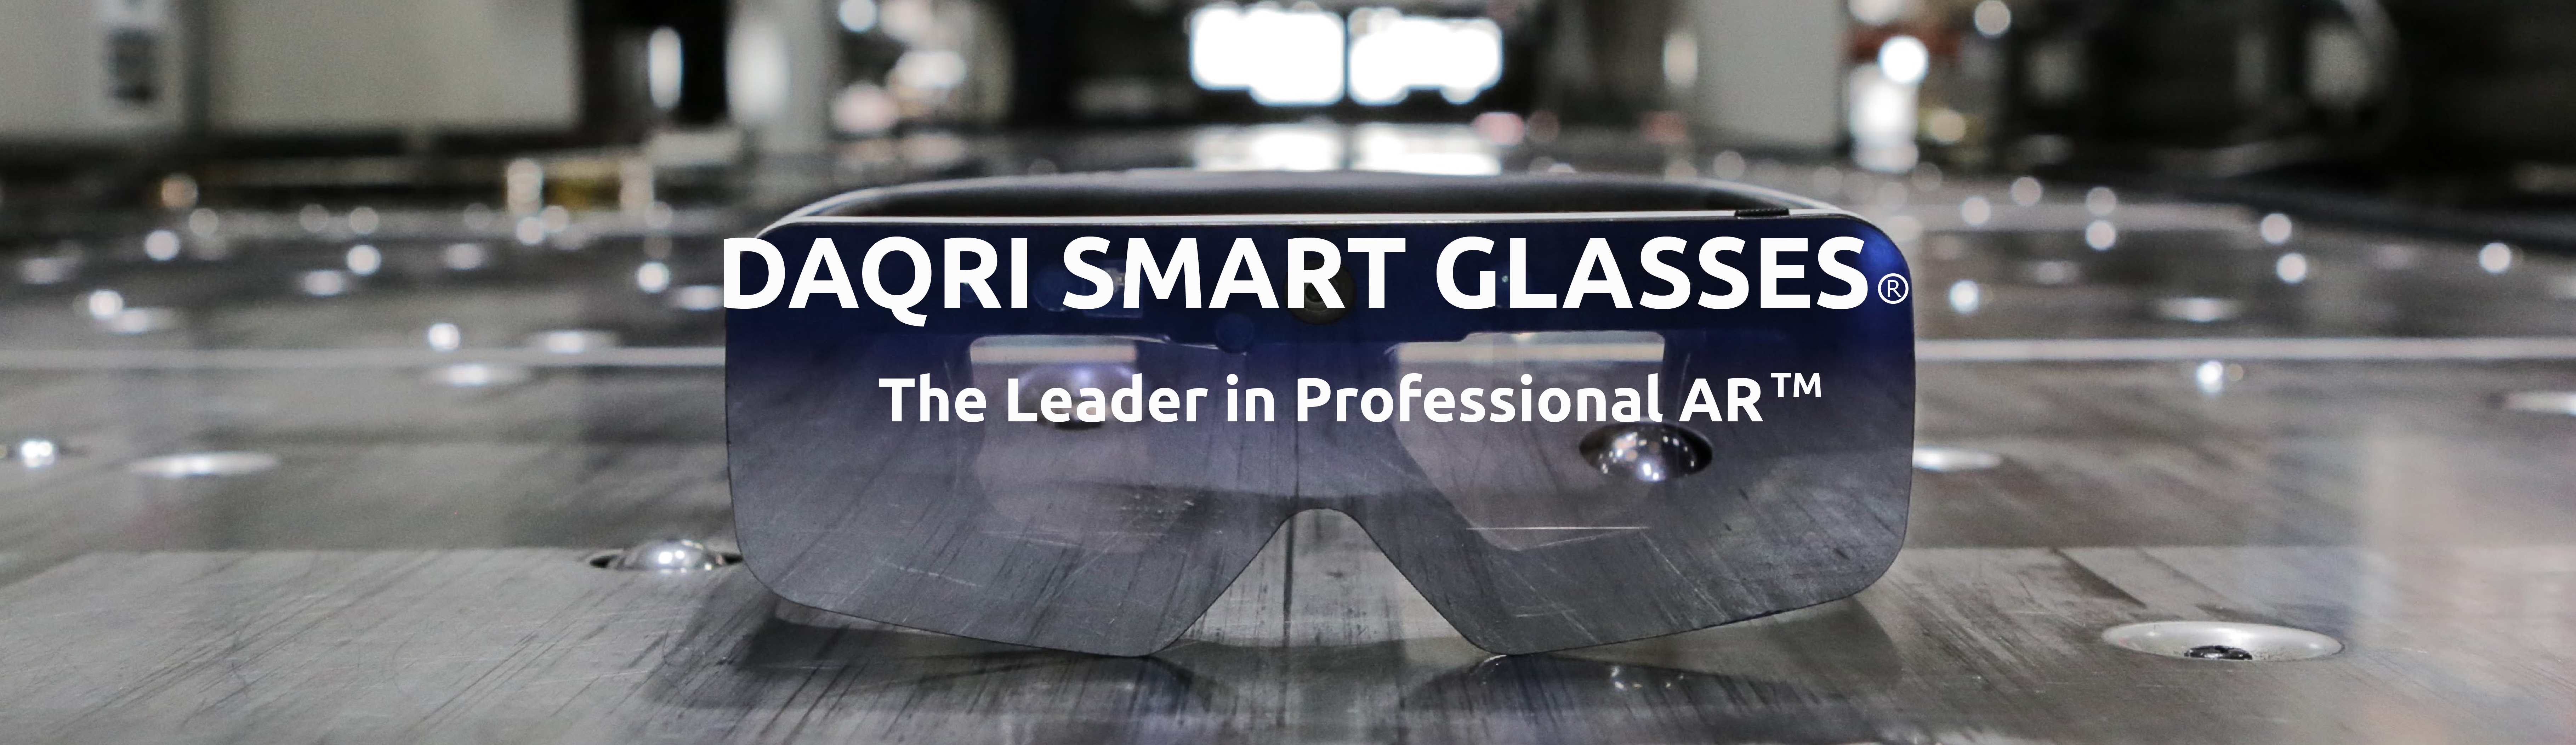 Daqri Smart Glasses Page Header